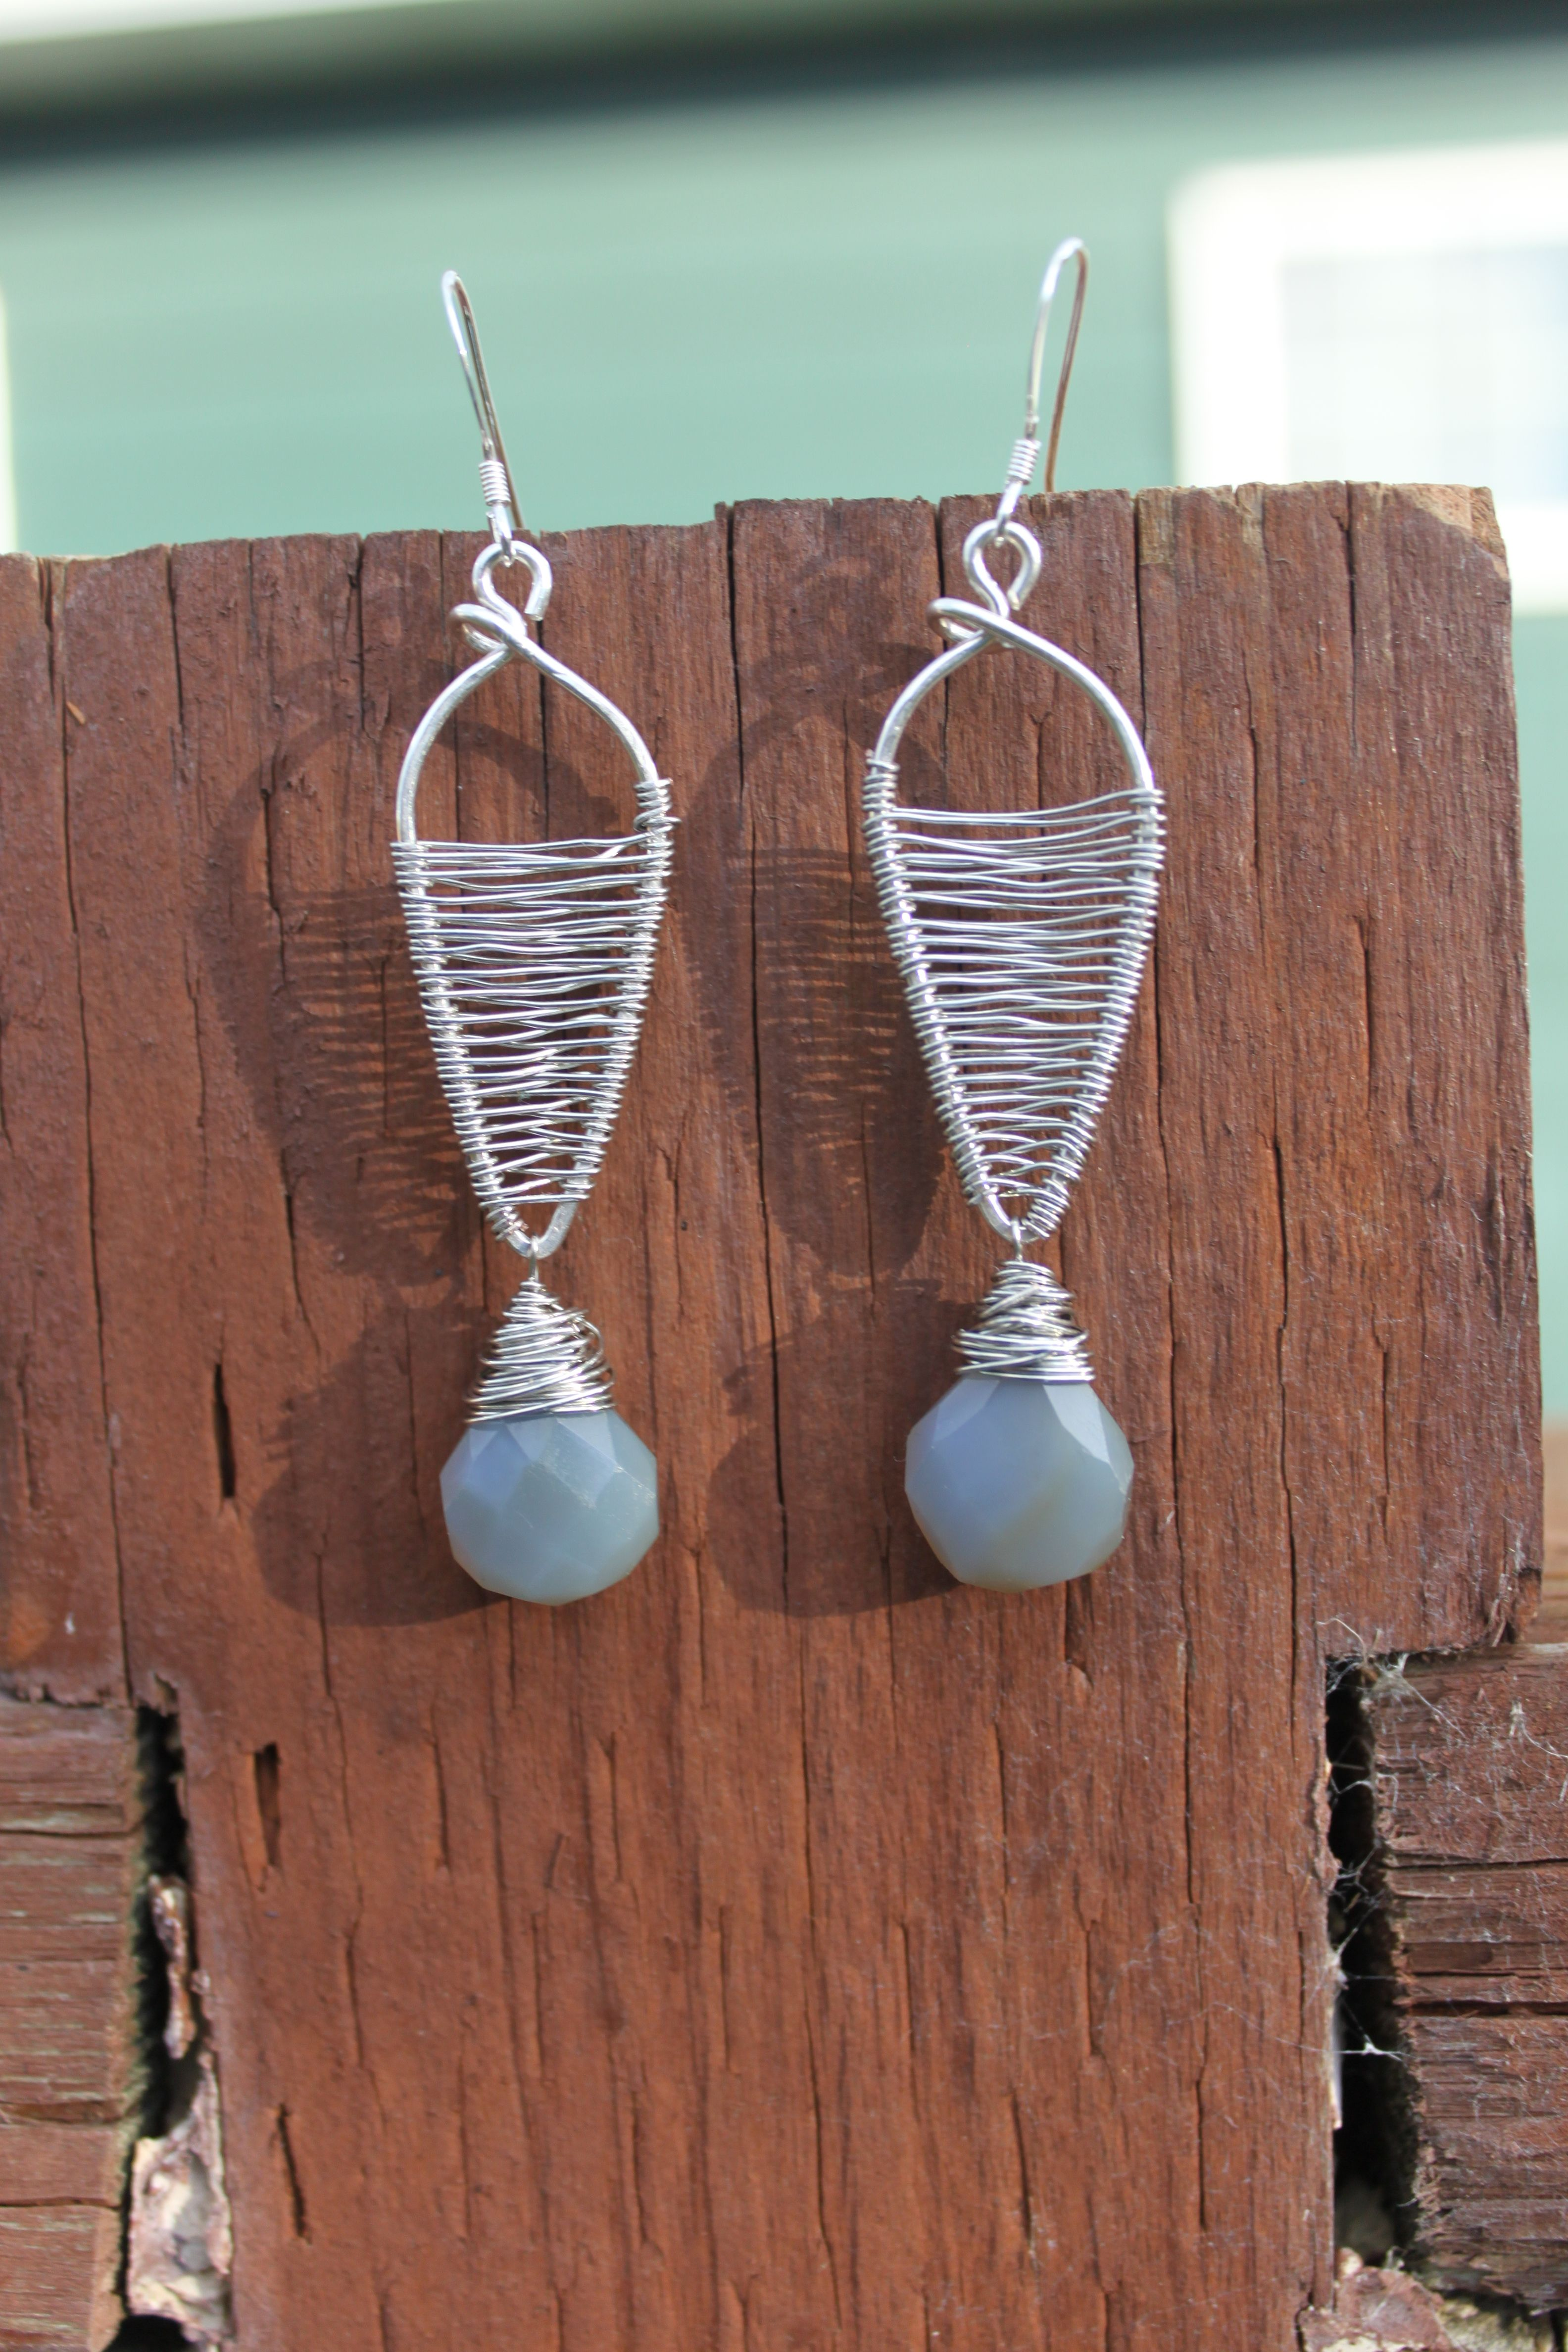 Wrapped Sterling Silver with Chalcedony Drop Earrings, by Cindy Larson Accessories